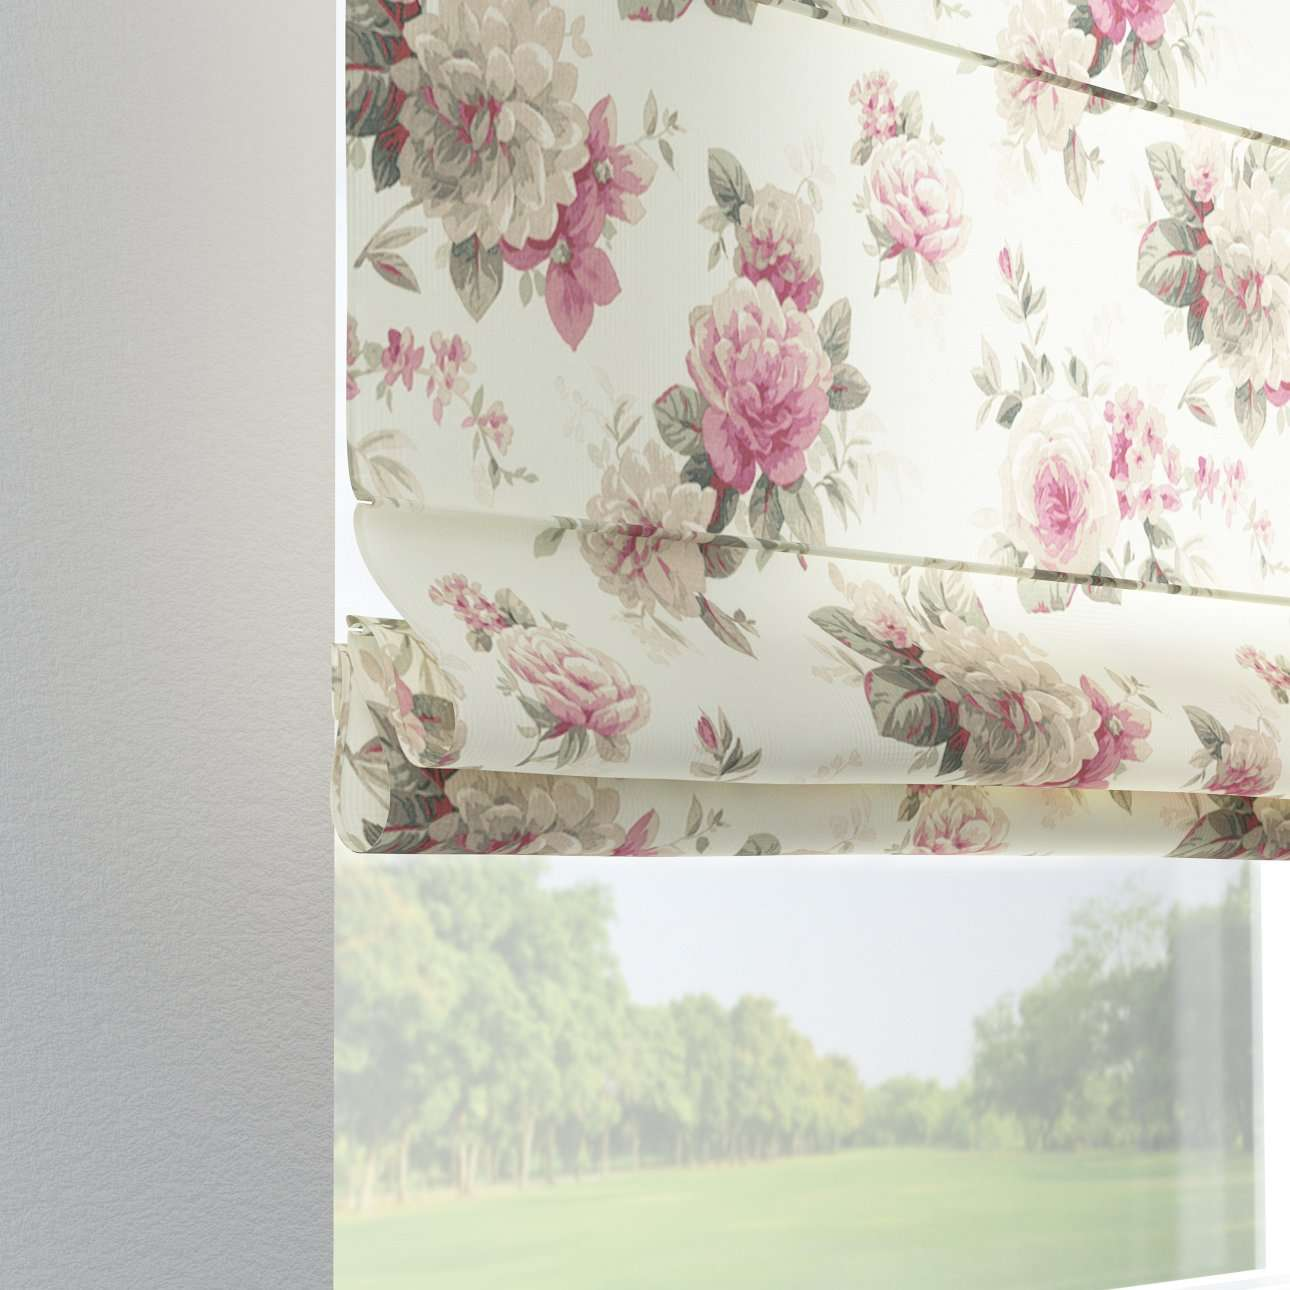 Verona tab top roman blind 80 x 170 cm (31.5 x 67 inch) in collection Mirella, fabric: 141-07